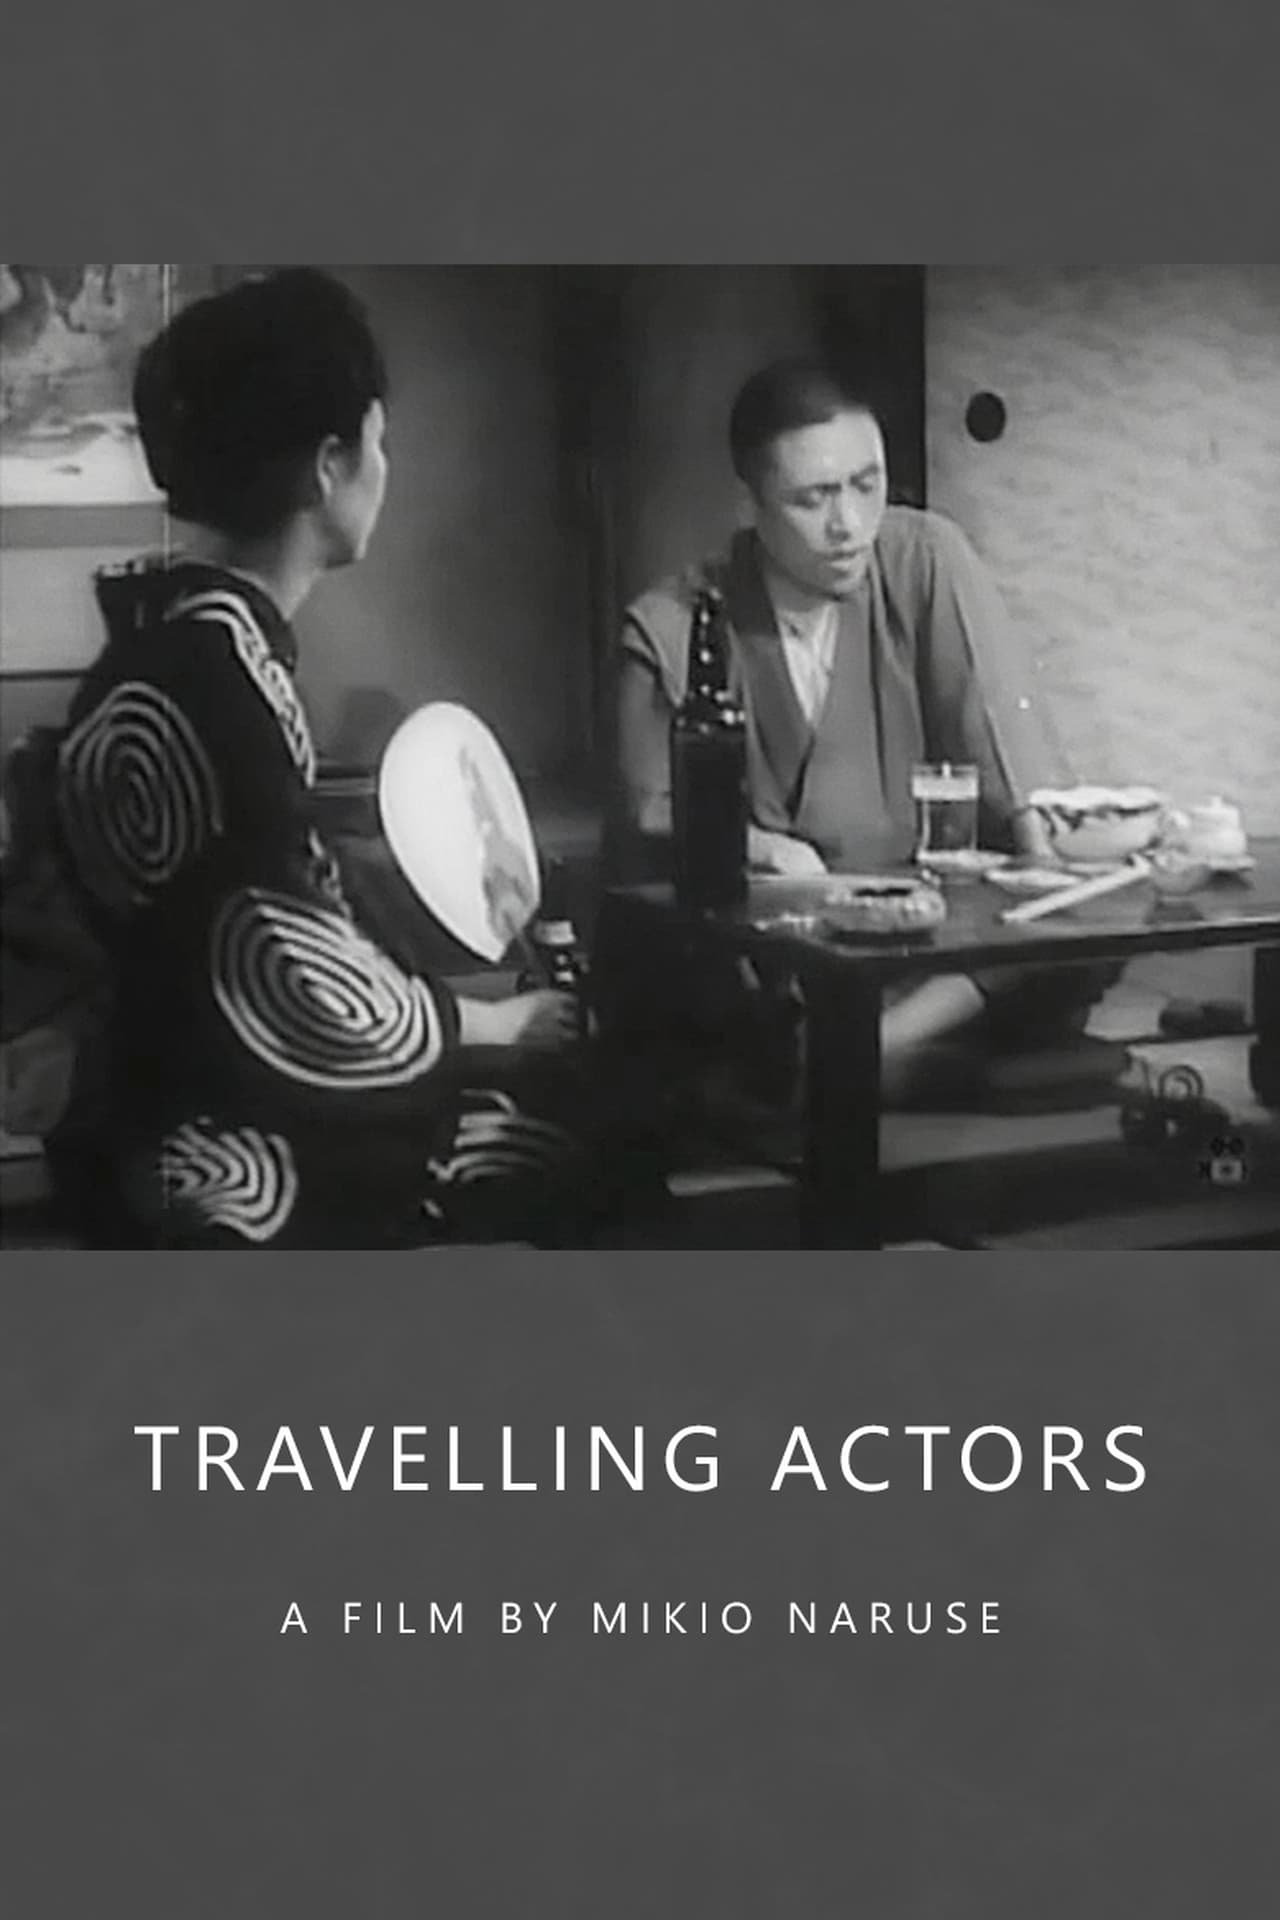 Travelling Actors